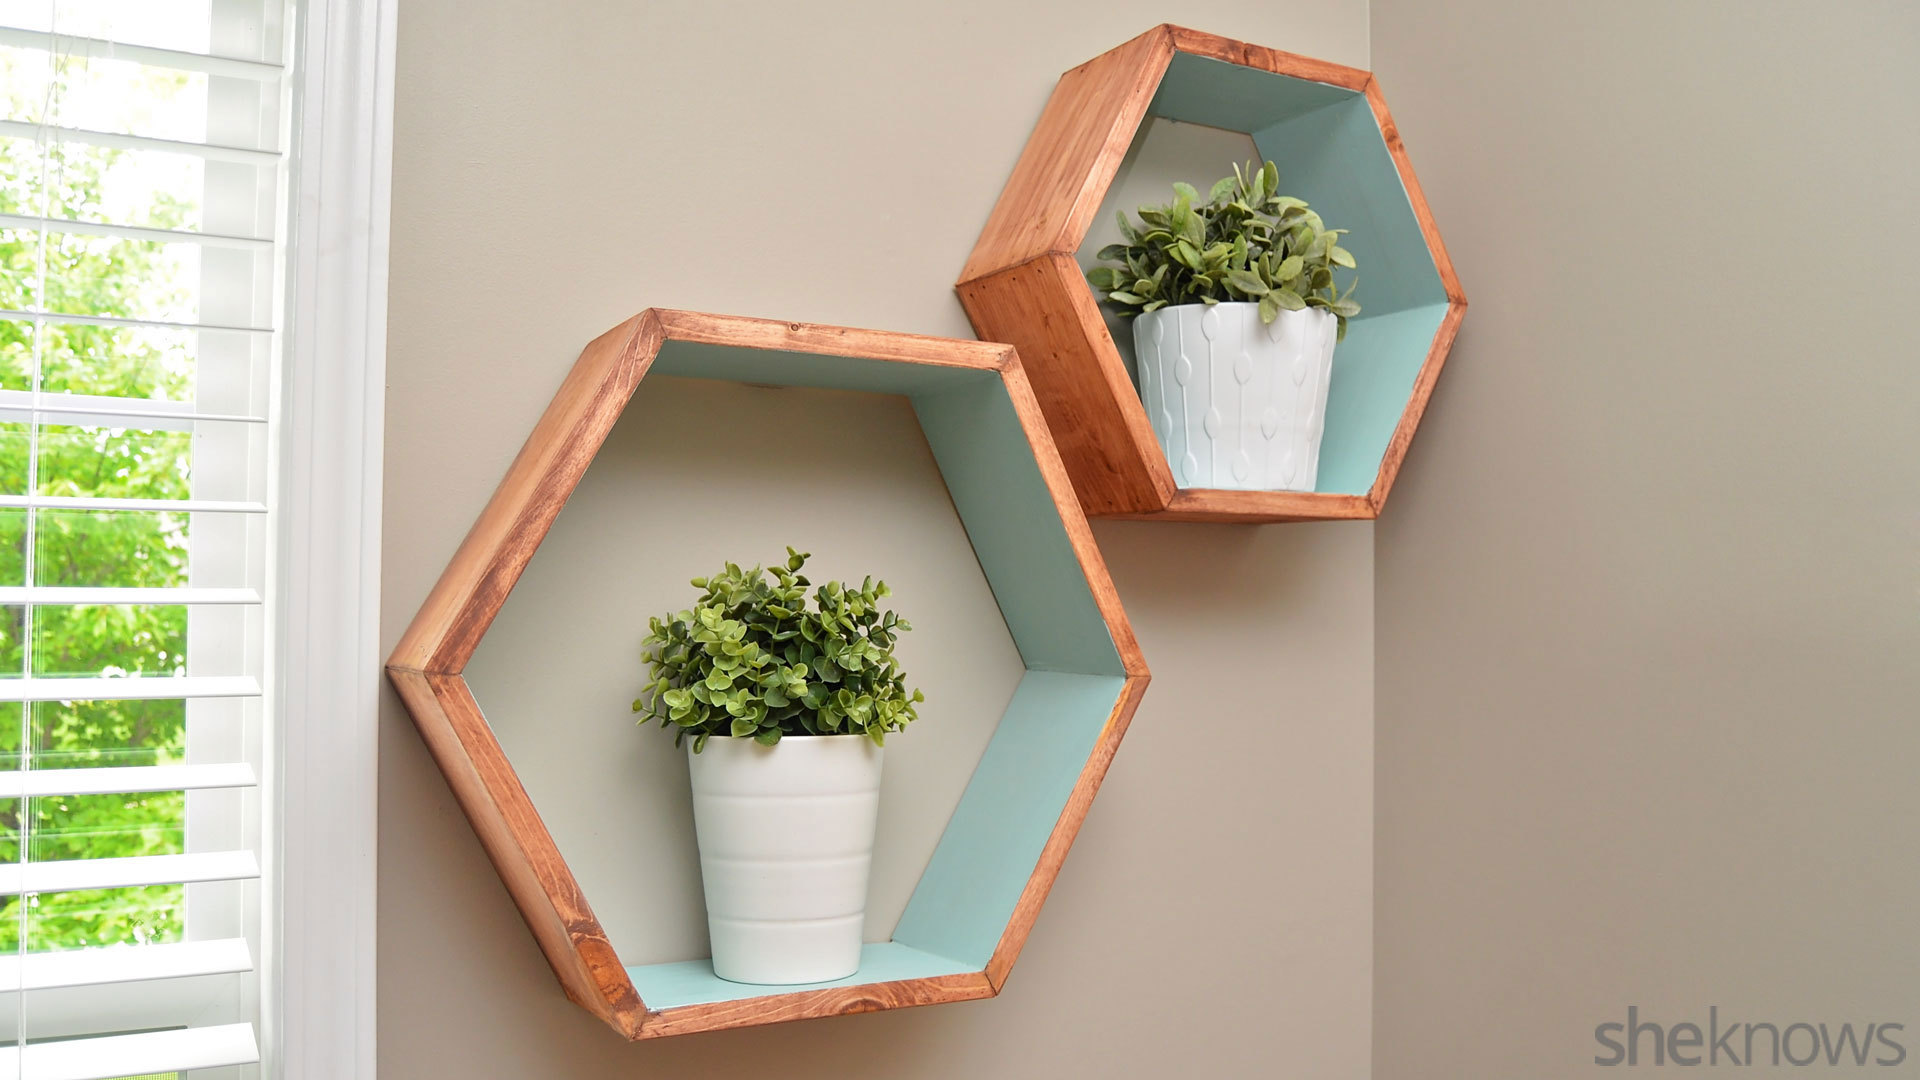 Make your own storage with geometric wall shelves - SheKnows